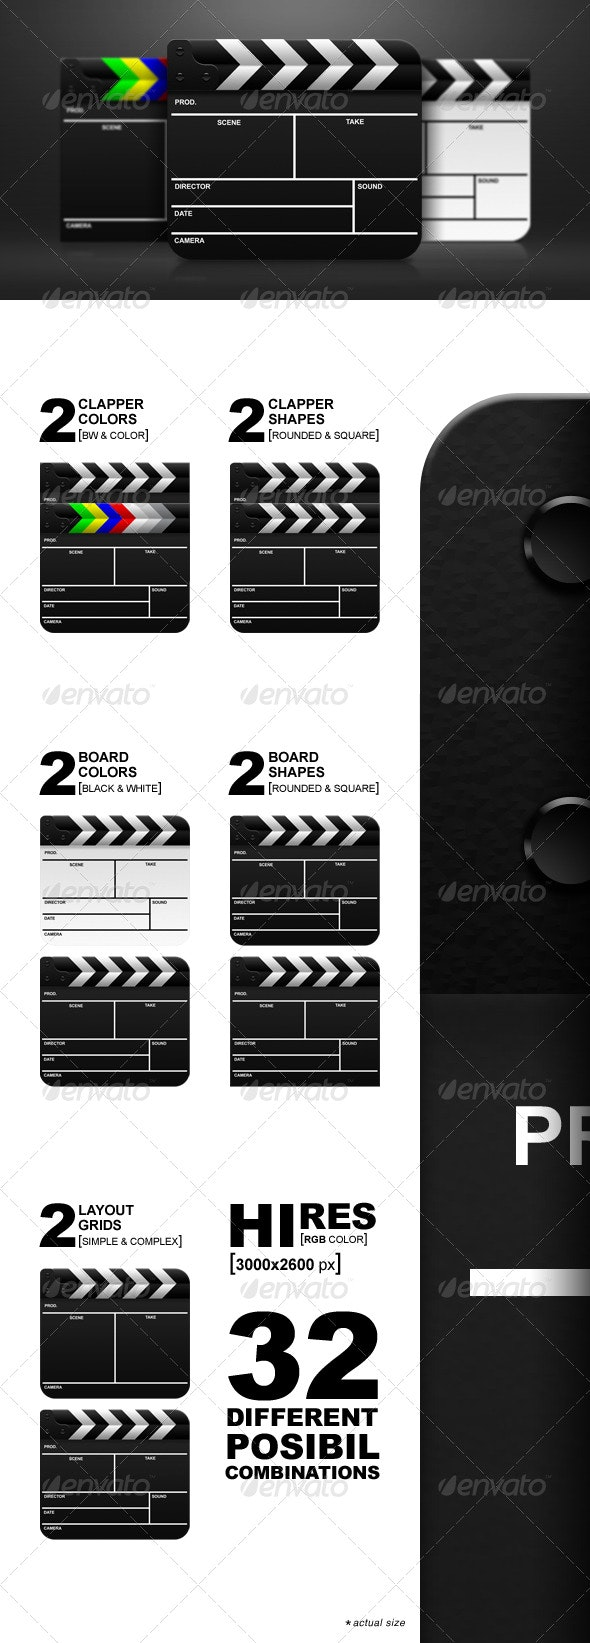 Film Clapperboard - Objects Illustrations